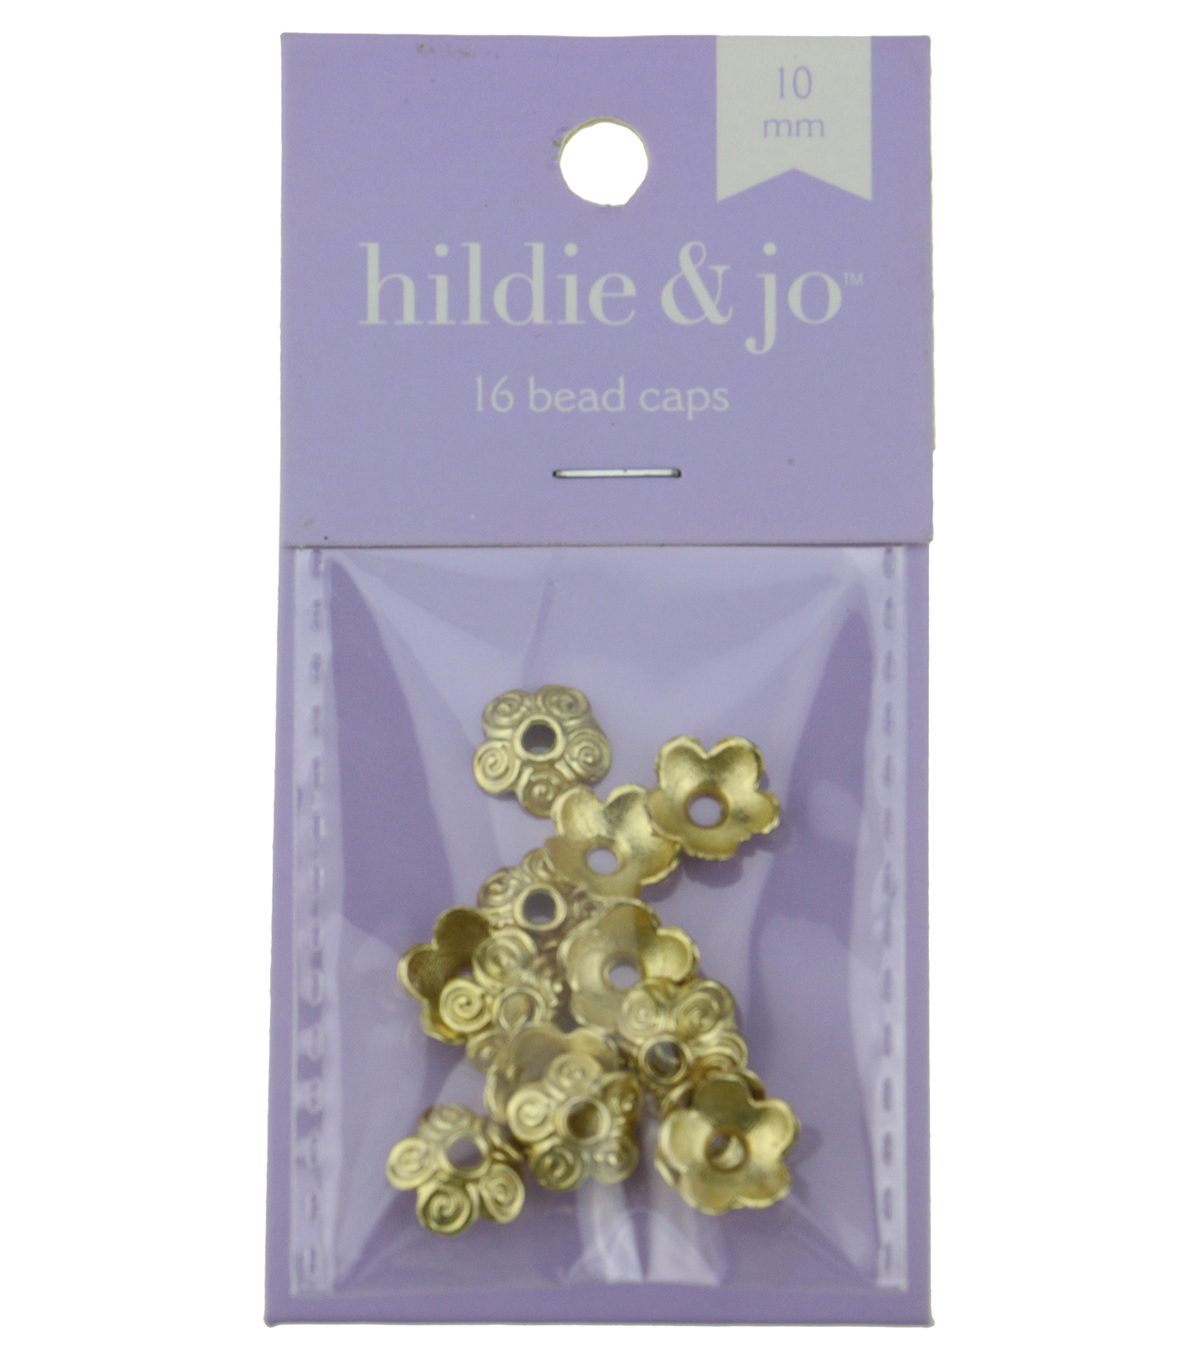 hildie & jo 16 Pack 10mm Flower Gold Bead Caps